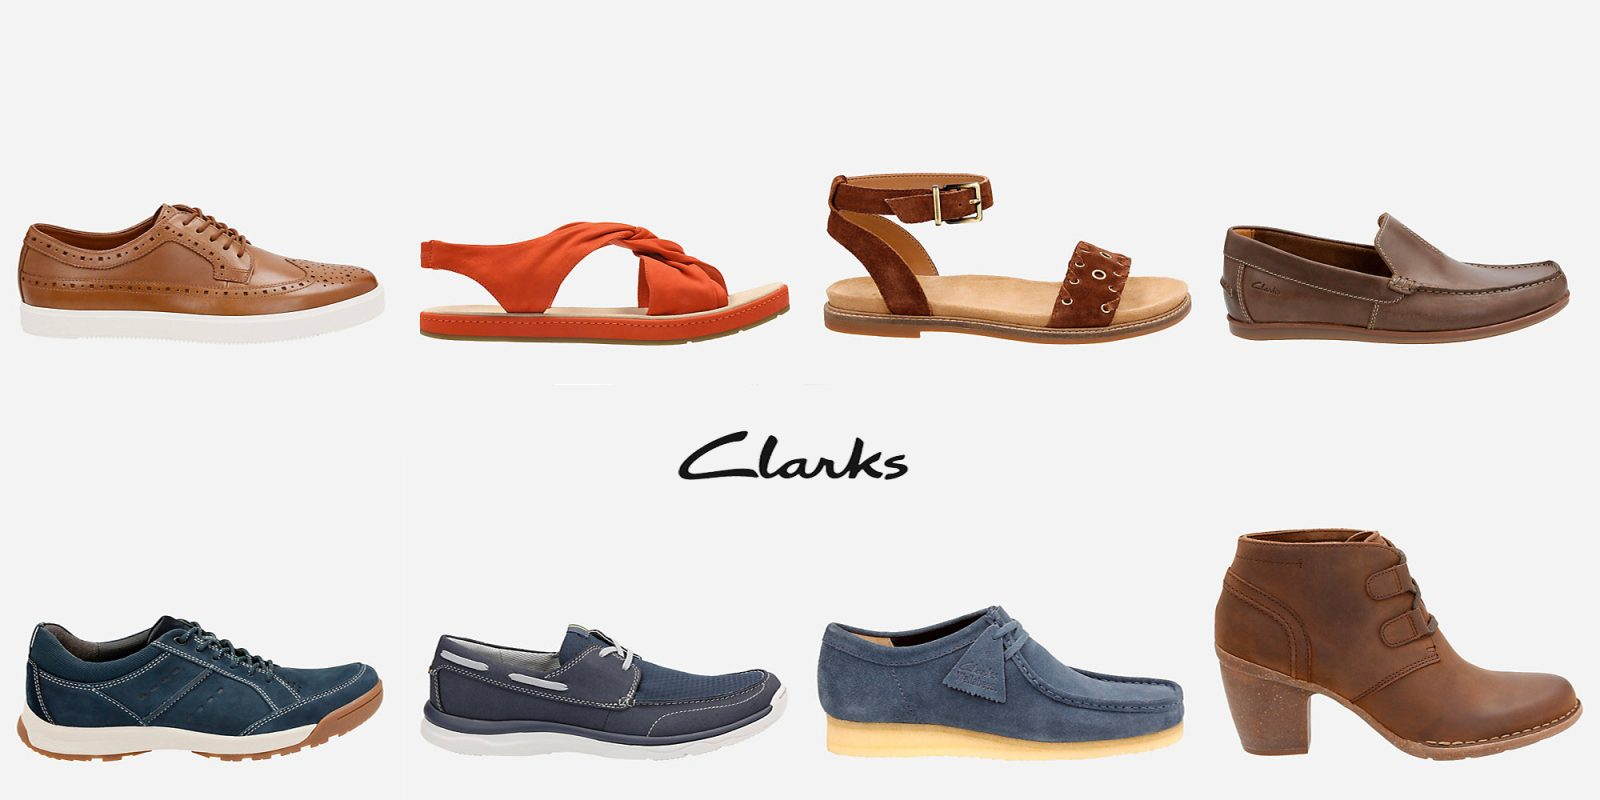 new concept 0d2dc 5ff56 Clarks Summer Sale takes up to 40% off select styles + an ...